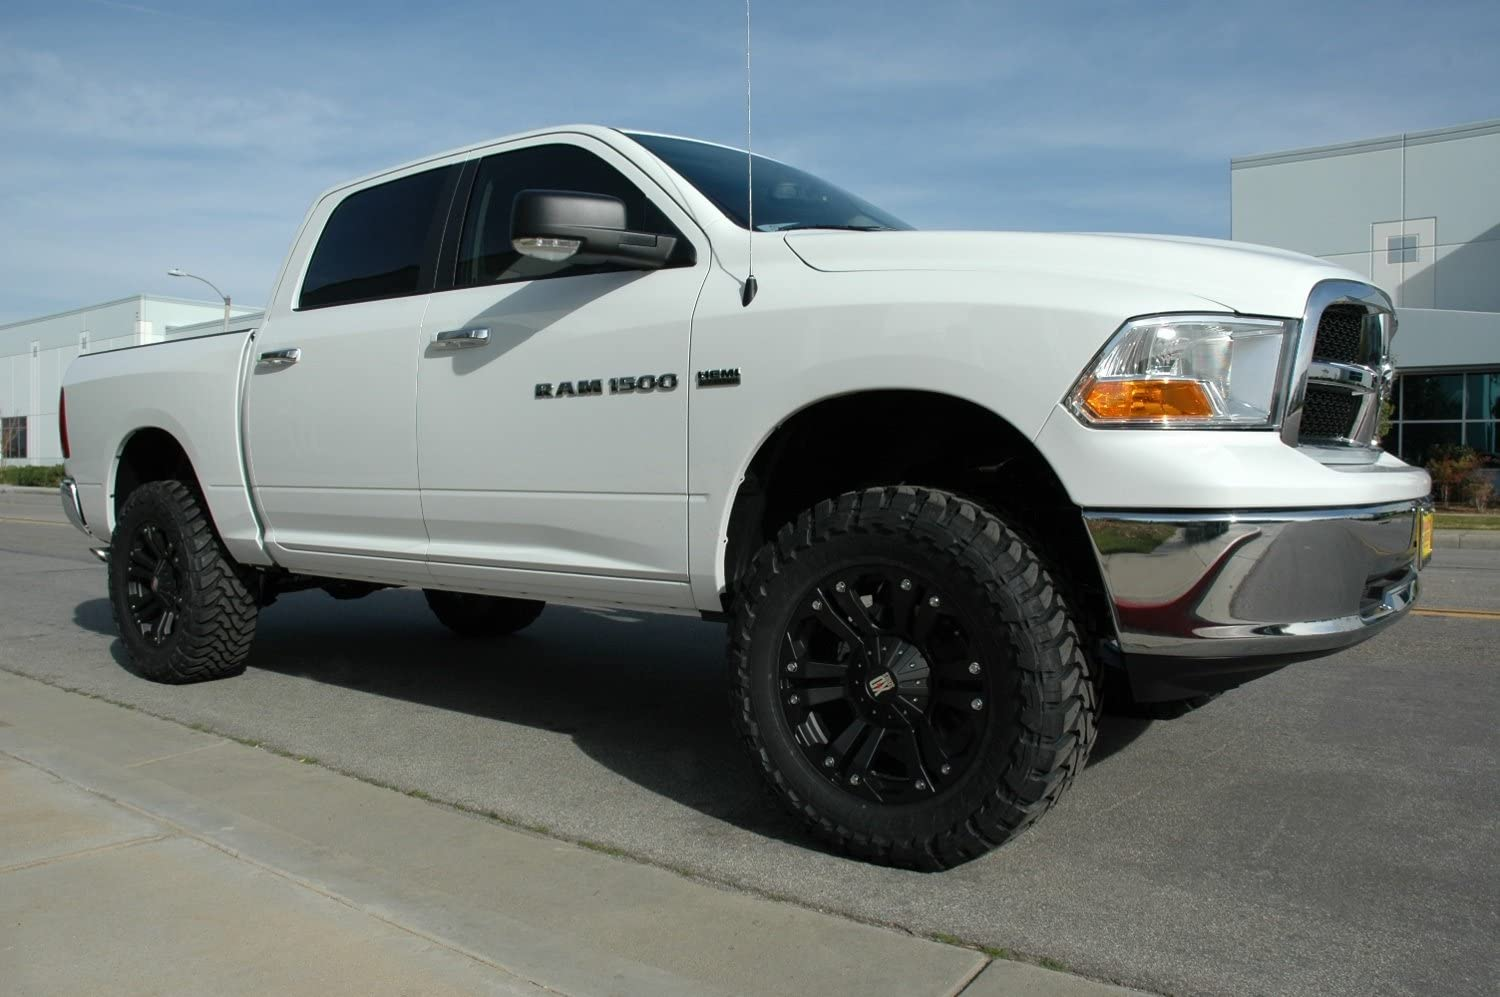 4 Lift Kit w//Gen II fabricated spindles no shocks CST CSK-D23-2 02-08 RAM 1500 2WD